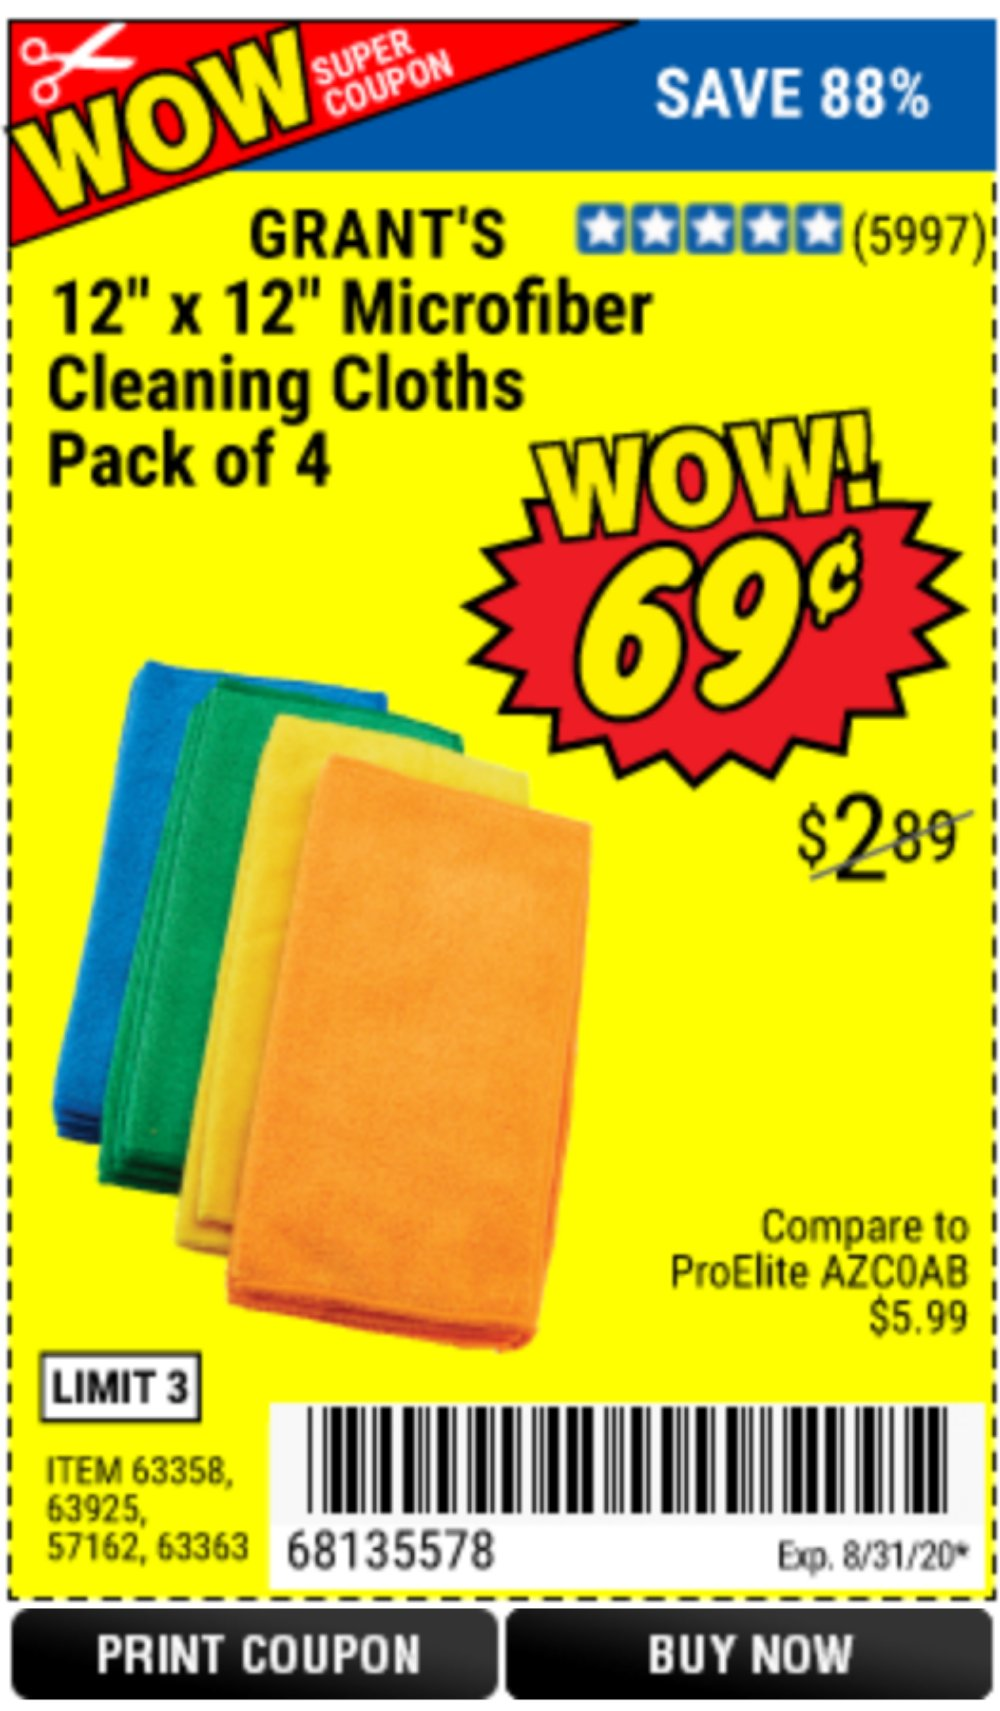 Harbor Freight Coupon, HF Coupons - Microfiber Cleaning Cloths Pack Of 4